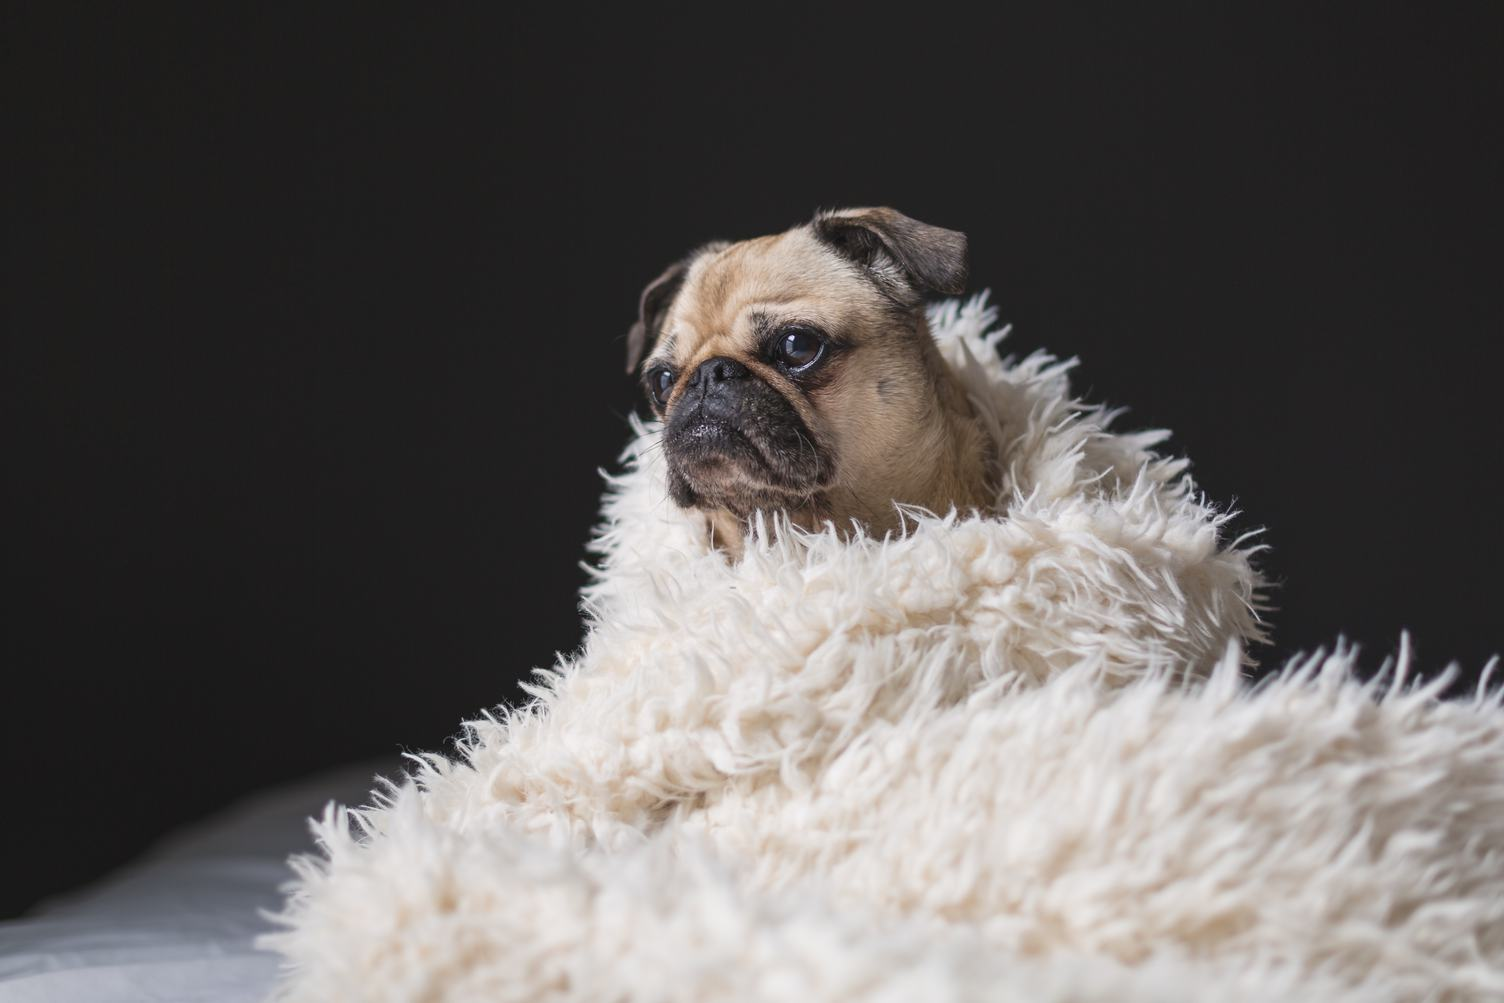 Wrapped in a Pug